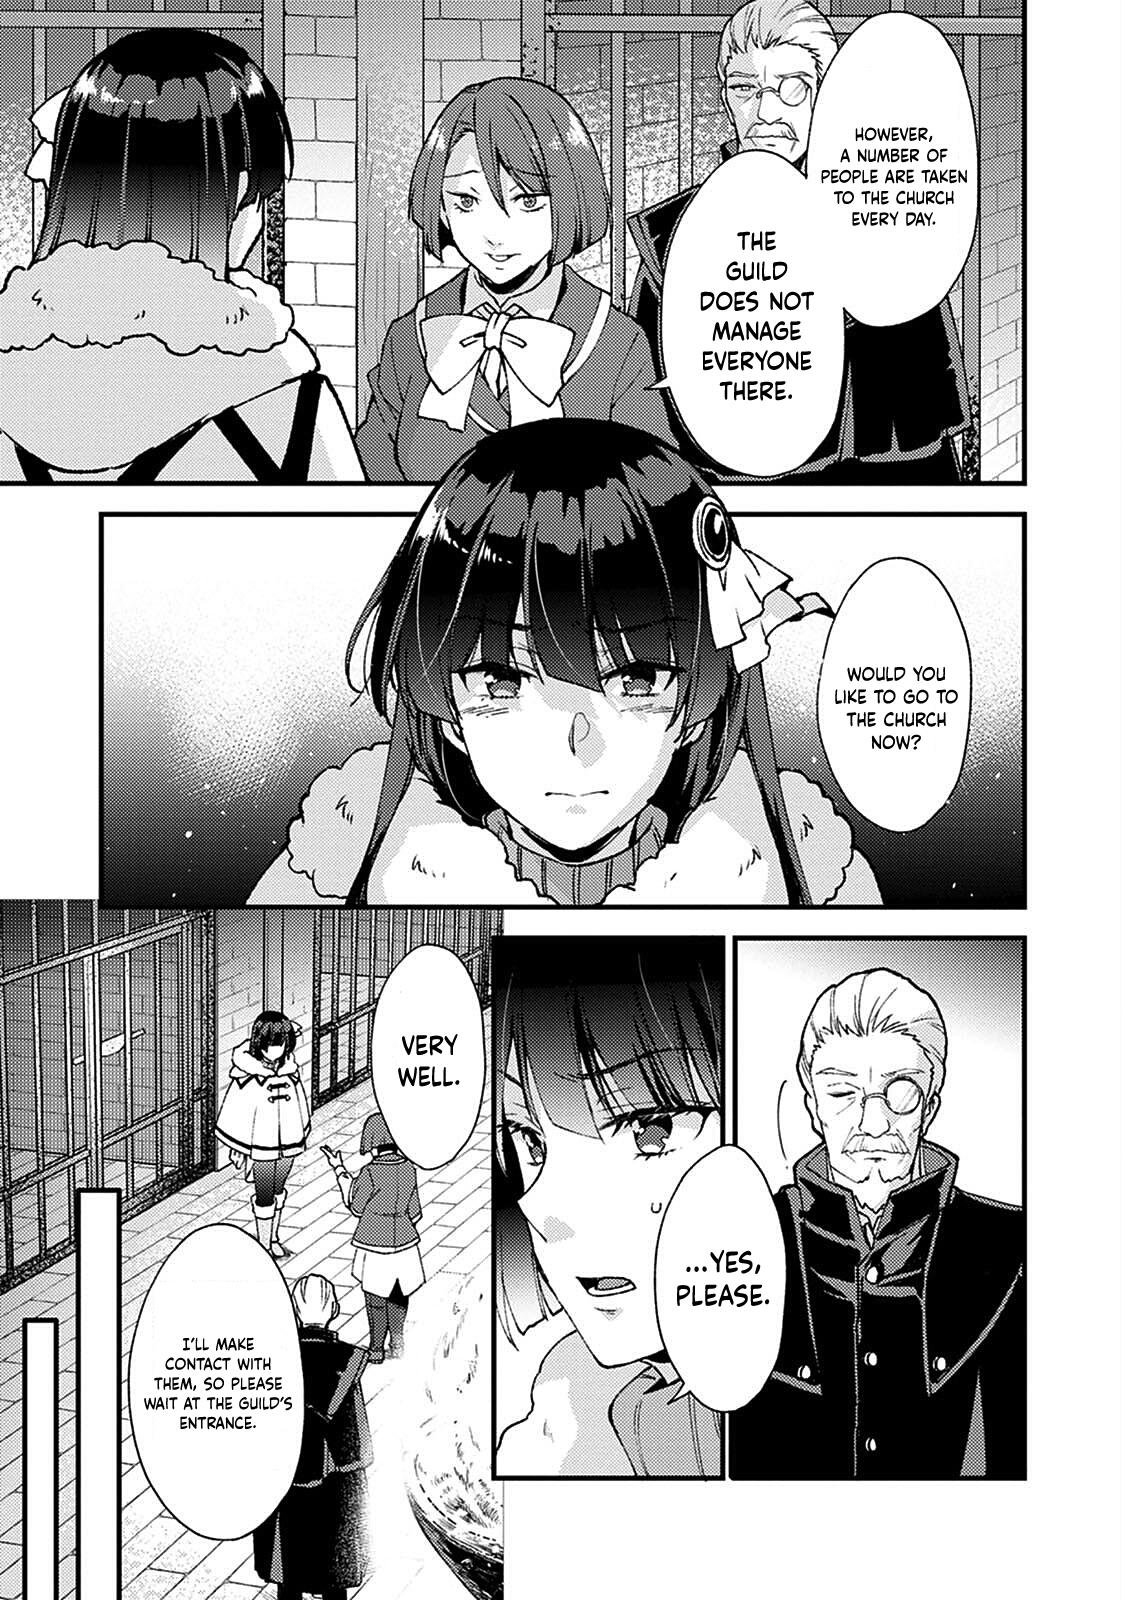 A Sword Master Childhood Friend Power Harassed Me Harshly, So I Broke Off Our Relationship And Made A Fresh Start At The Frontier As A Magic Swordsman Chapter 10 page 10 - Mangakakalots.com